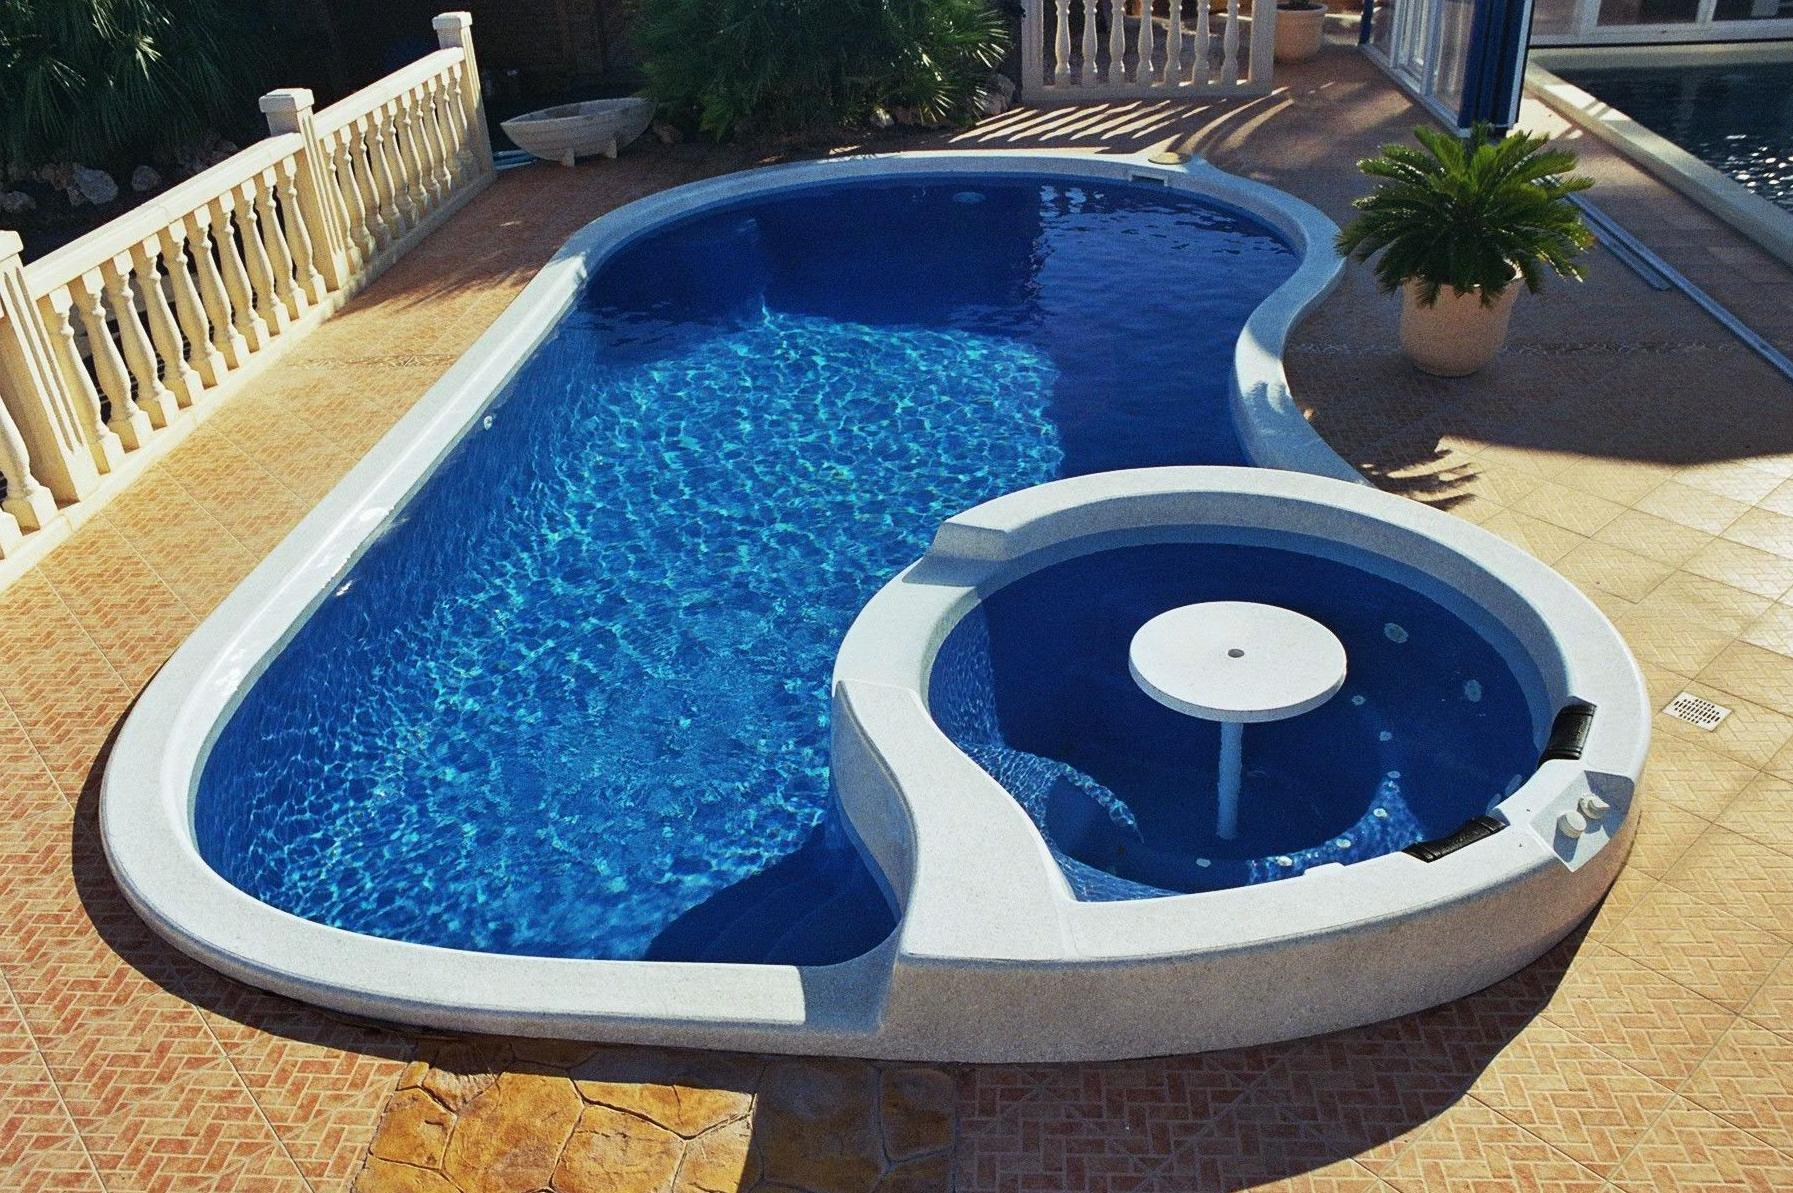 Piscinas freedom pool piscinas y accesorios de ardigral for Piscina 8x4 escalera romana